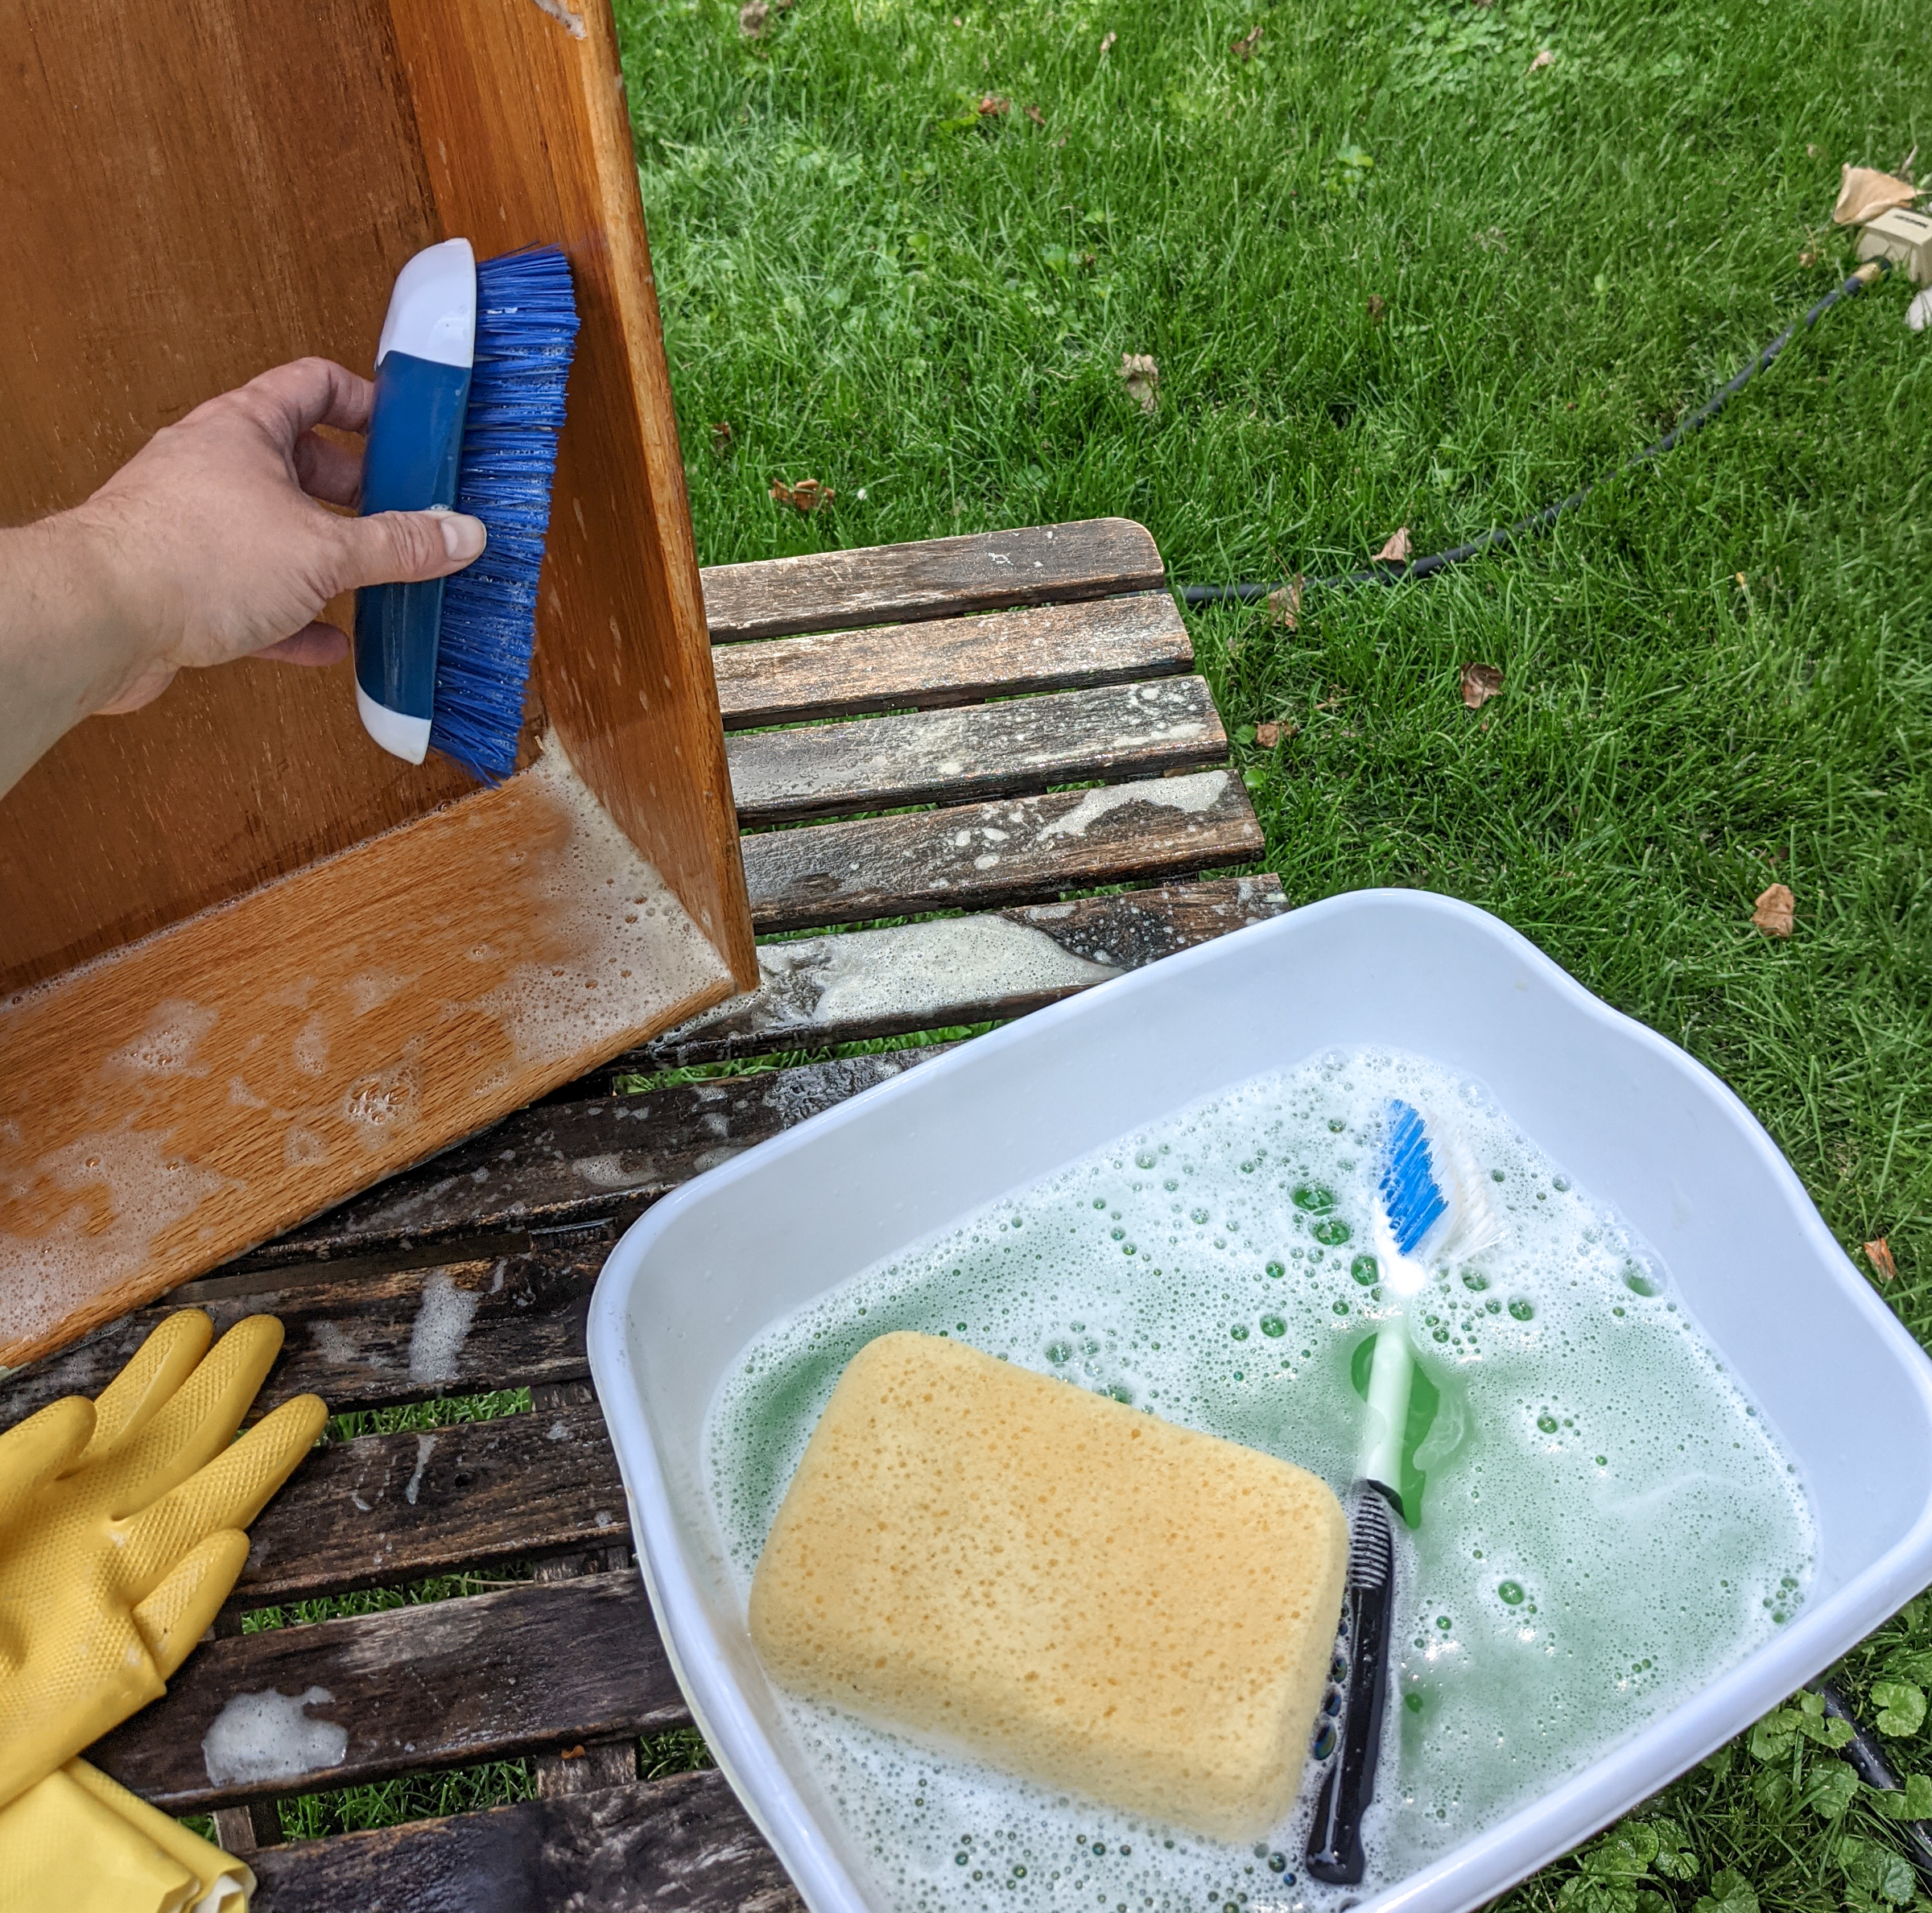 I hand holds a scrub brush as it scrubs the interior of the wood drawer.